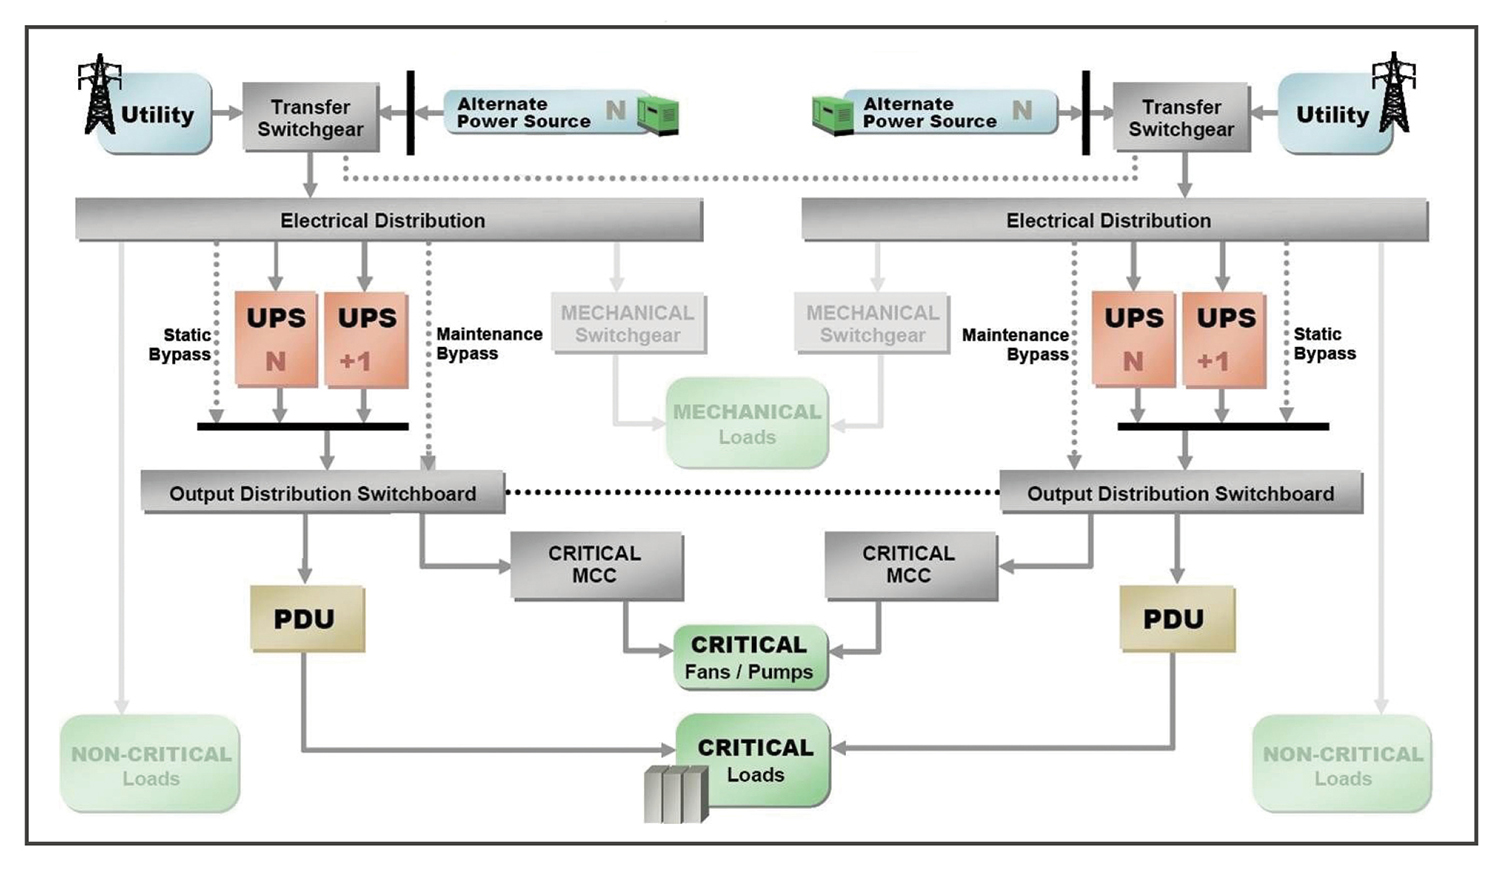 Figure 3. One-line diagram shows Technopark Data Center's redundant power paths.